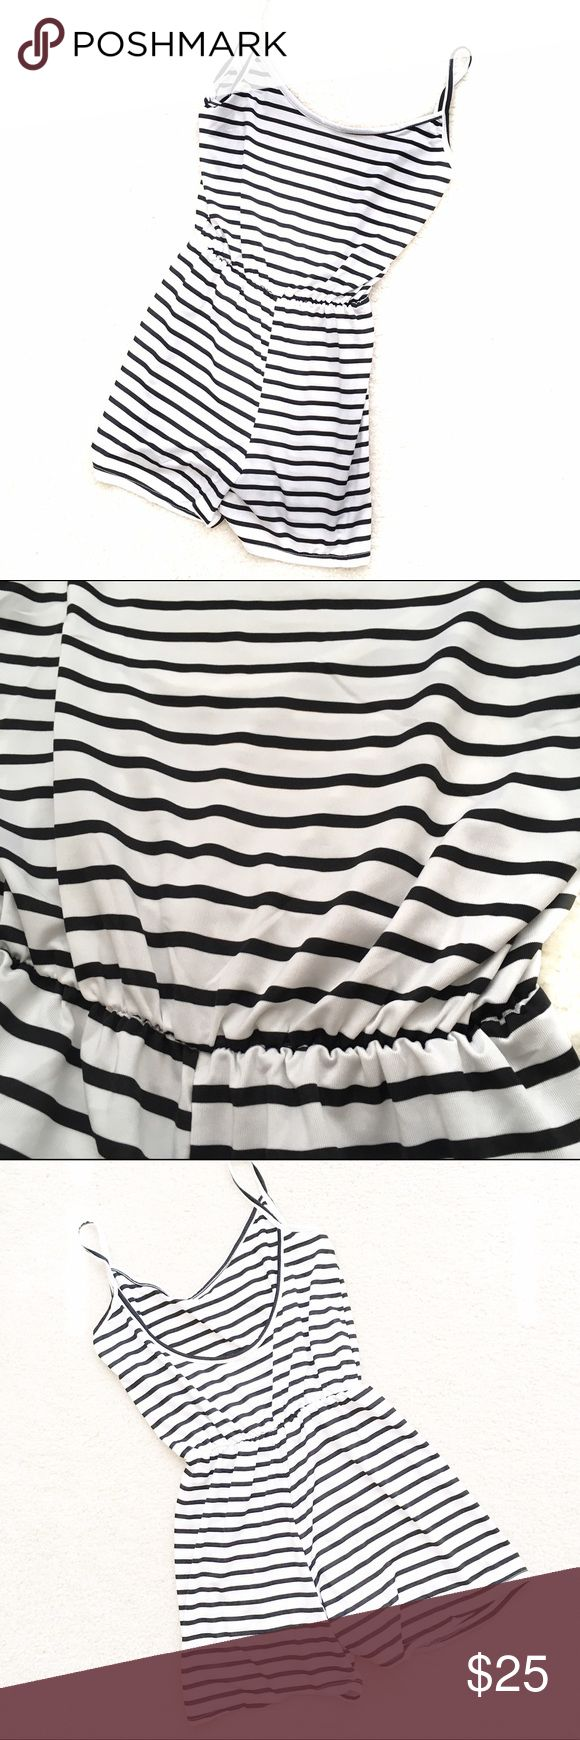 Romper Bathing Suit Cover-up Spaghetti strap romper in black and white striped. Very thin soft fabric (polyester blend) perfect for a bathing suit cover up. Faintly sheer fabric. SIZING INFO: Chinese sizing Medium equals US sizing XS/S however this seems to run on the small size. Please see images for manufacturer sizing info and feel free to message me for extra measurements, to ensure proper fit. Pants Jumpsuits & Rompers